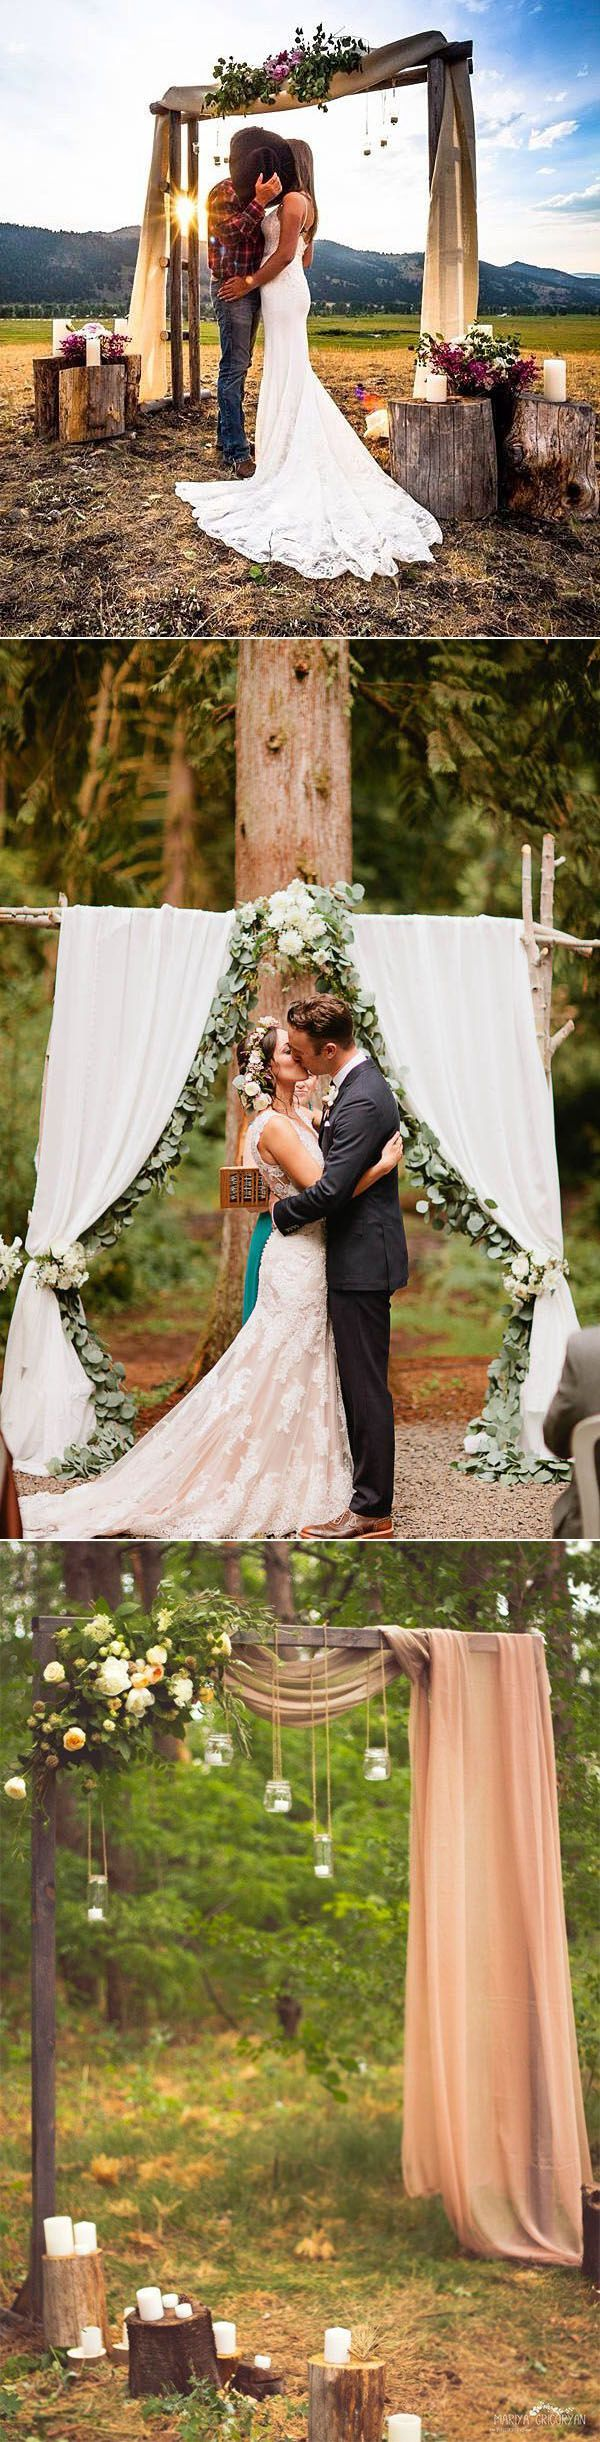 romantic-easy-DIY-rustic-wedding-arches-ideas.jpg (600×2442)